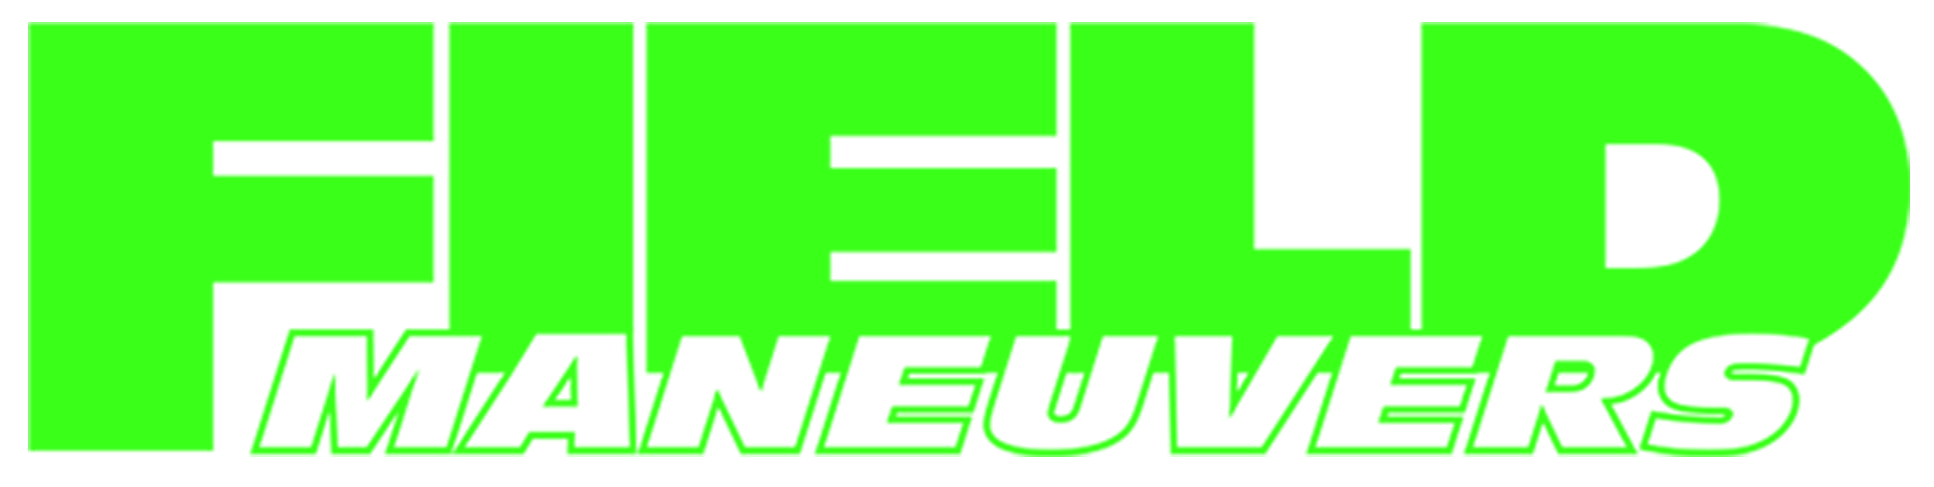 Field Maneuvers 2020 - Neon Green Logo.png